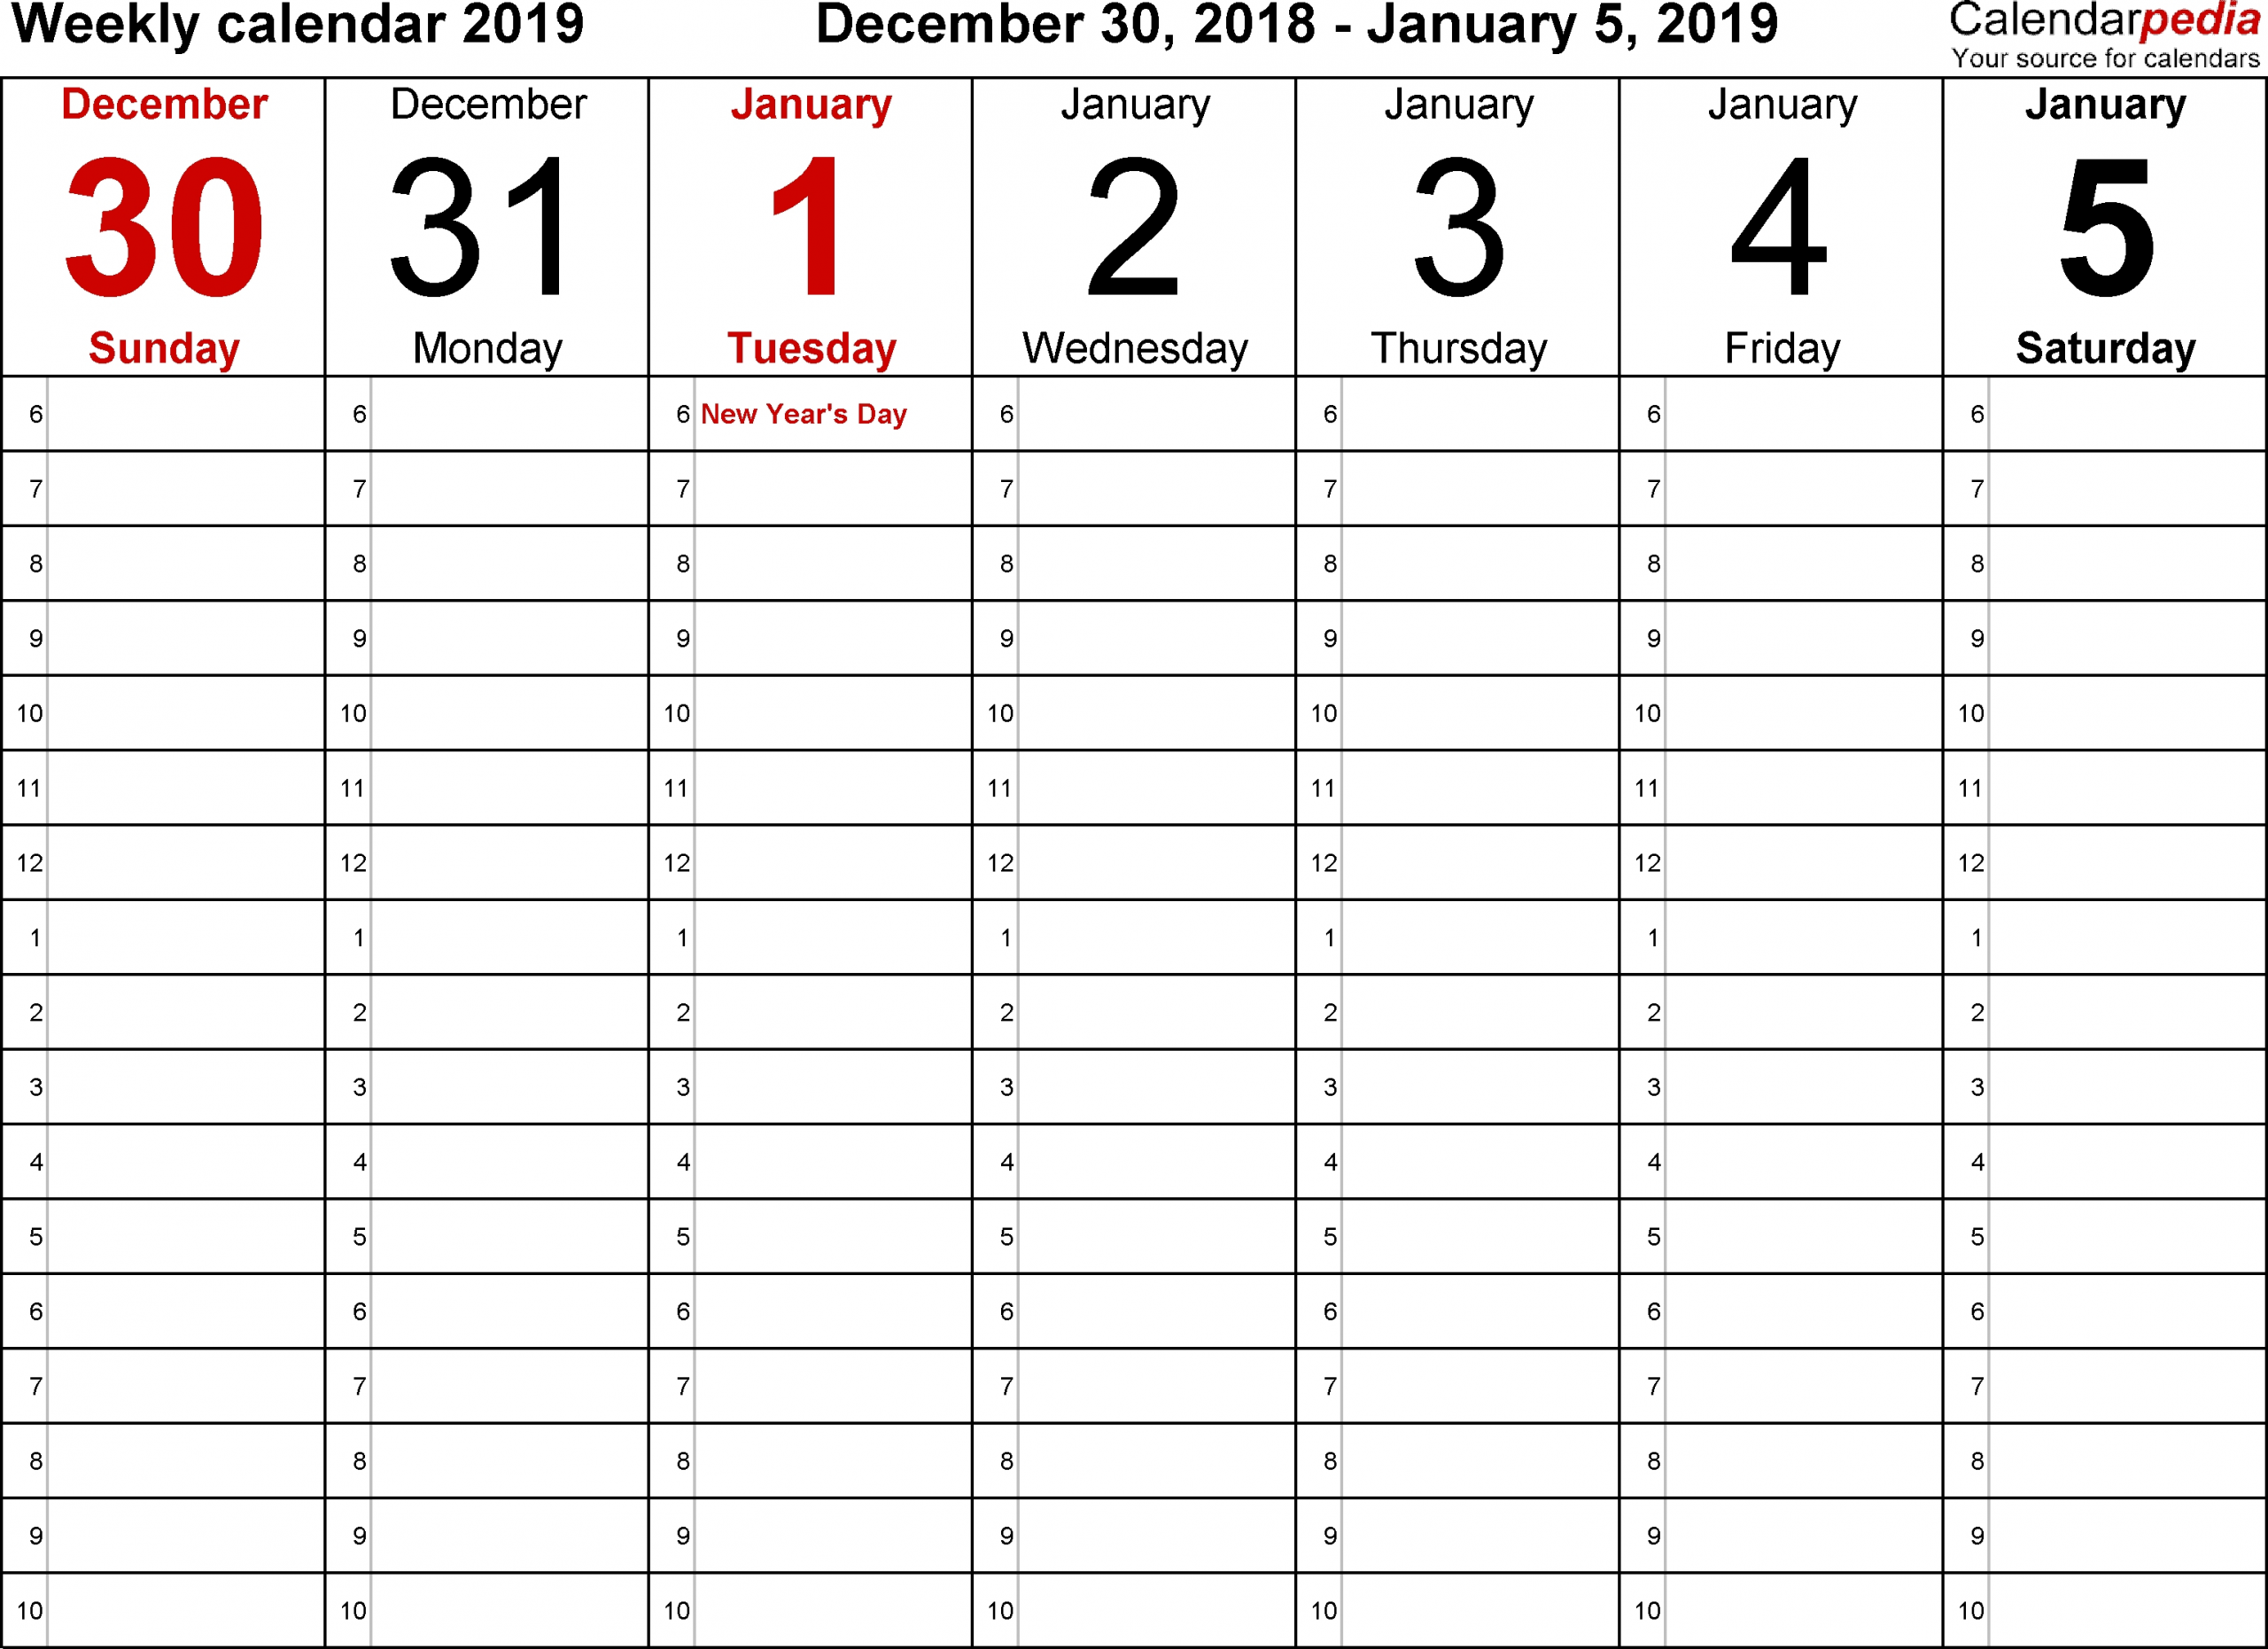 Blank Calendars To Print With Time Slots - Calendar Monthly Calendar With Time Slots Template